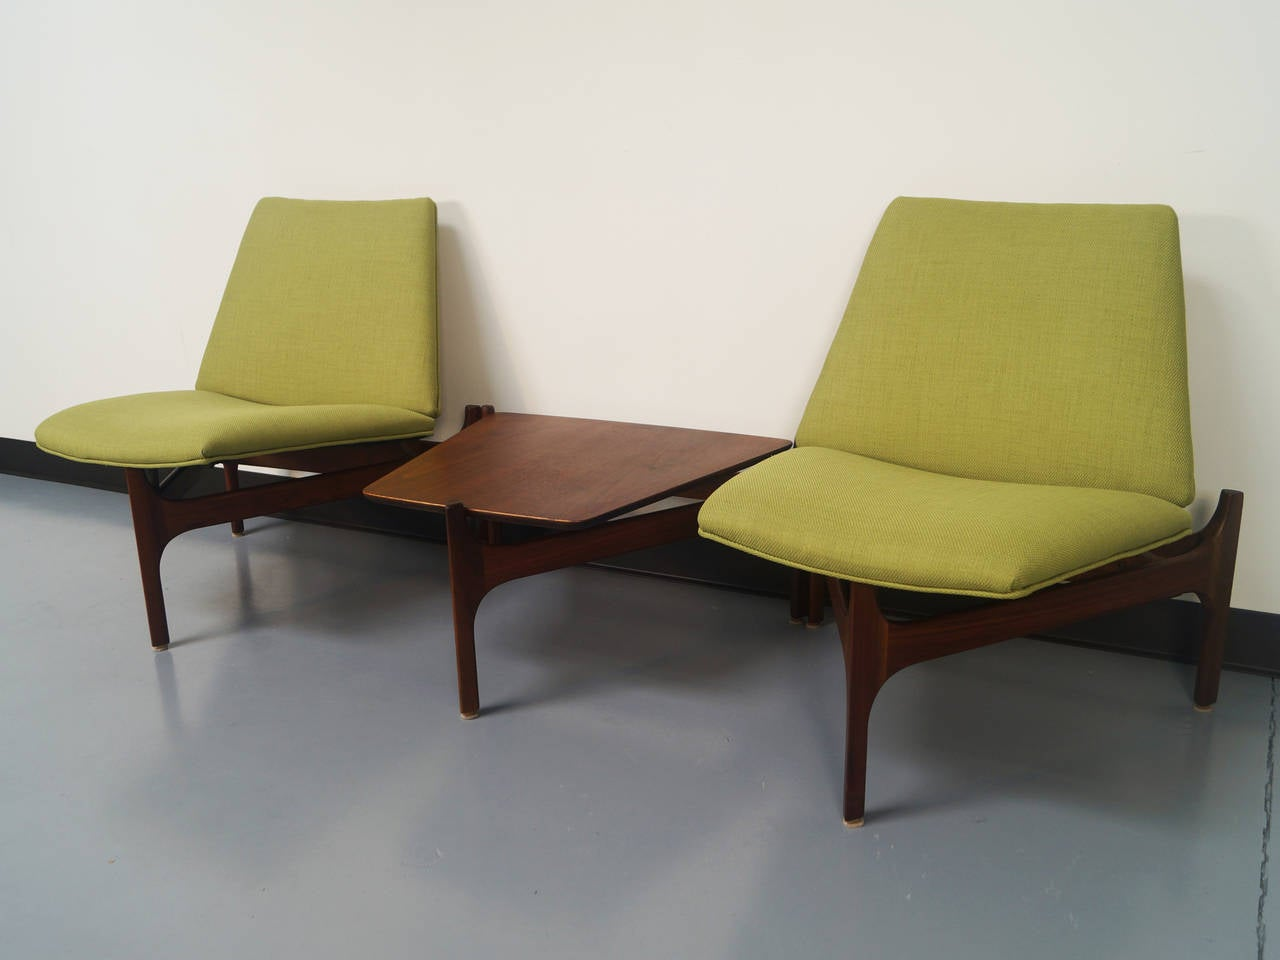 Vintage seating group designed by John Keal for Brown and Saltman.